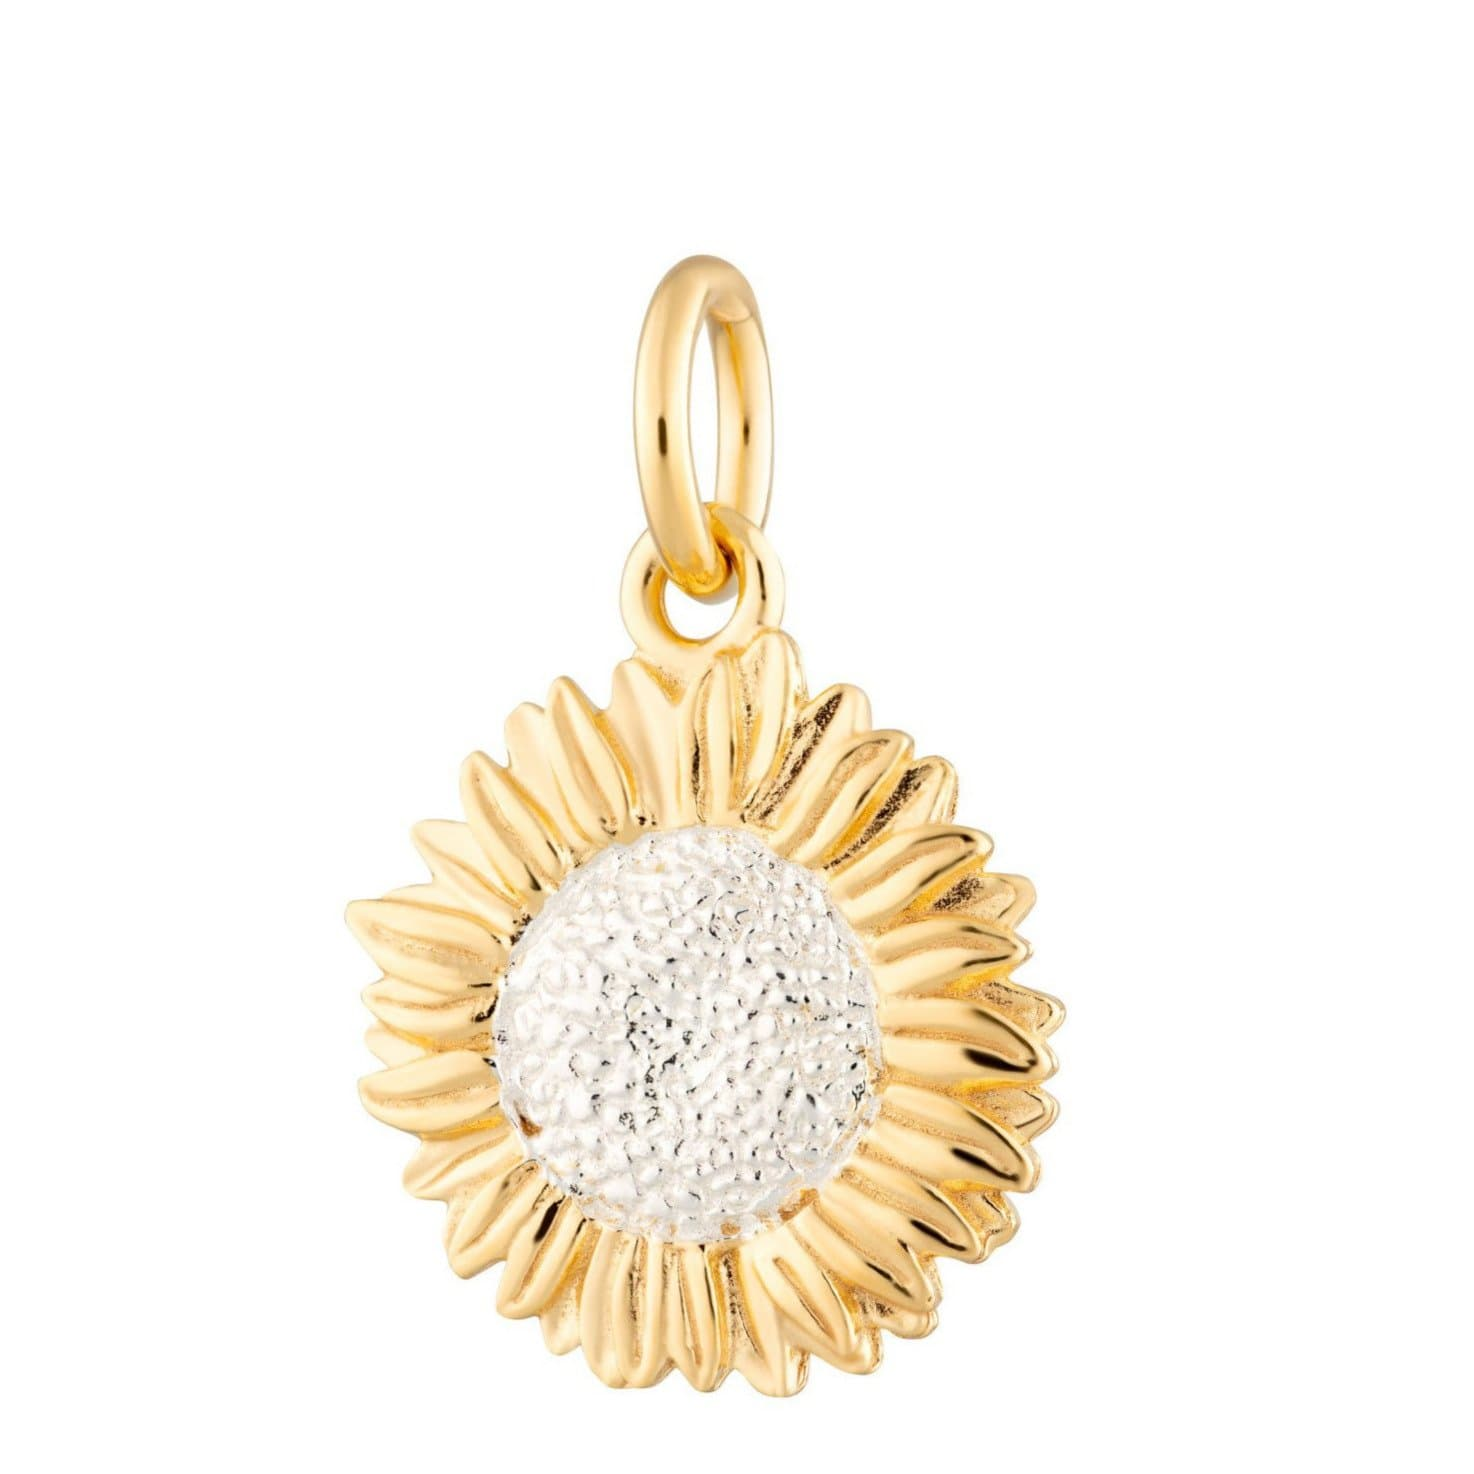 Gold Sunflower Charm by Lily Charmed